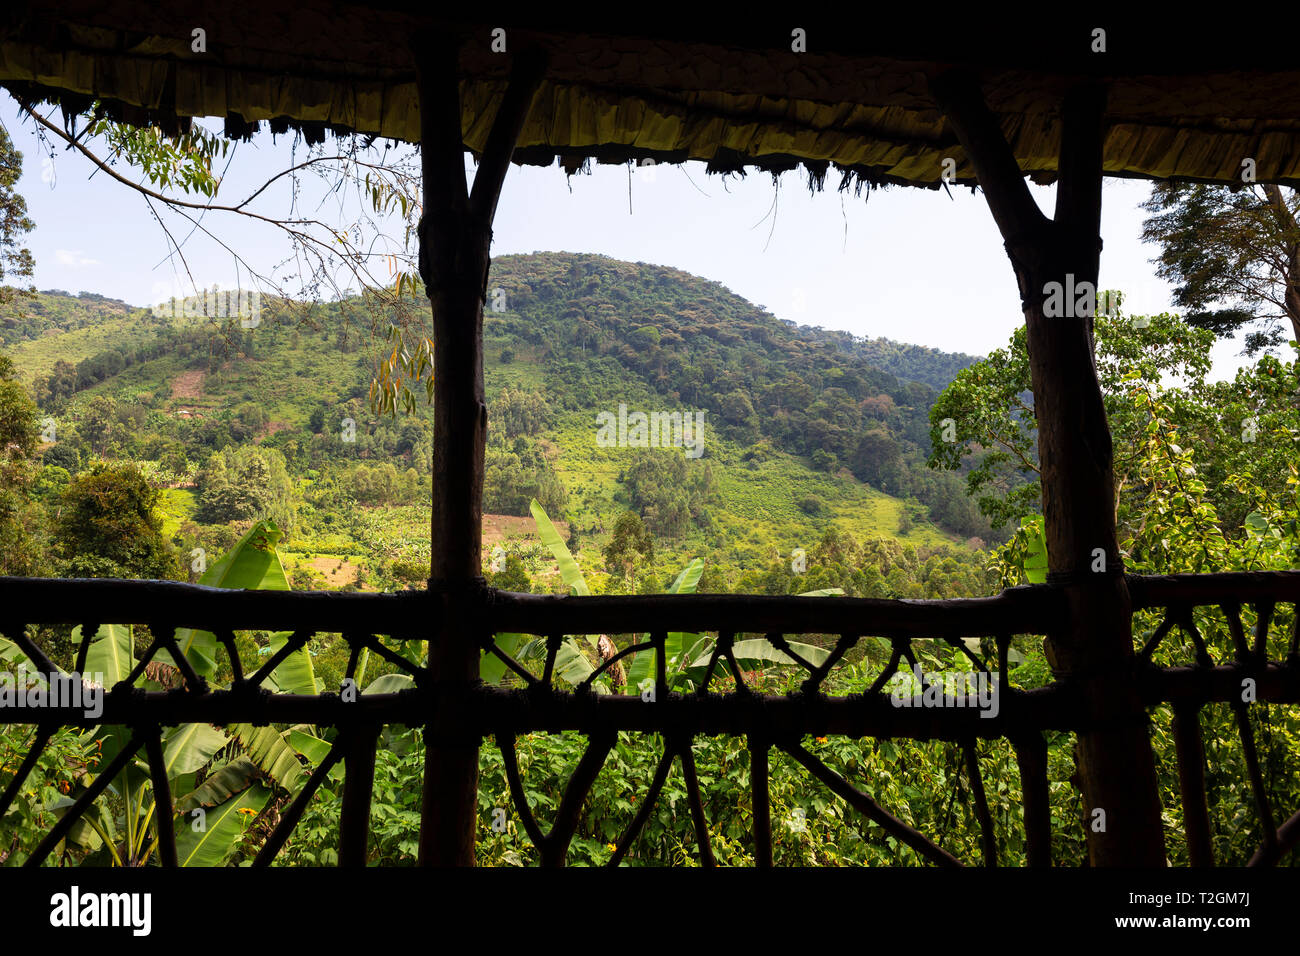 View of rainforest from Honeymoon Suite at Mahogany Springs Safari Lodge near Bwindi Impenetrable Forest National Park, South West Uganda, East Africa Stock Photo